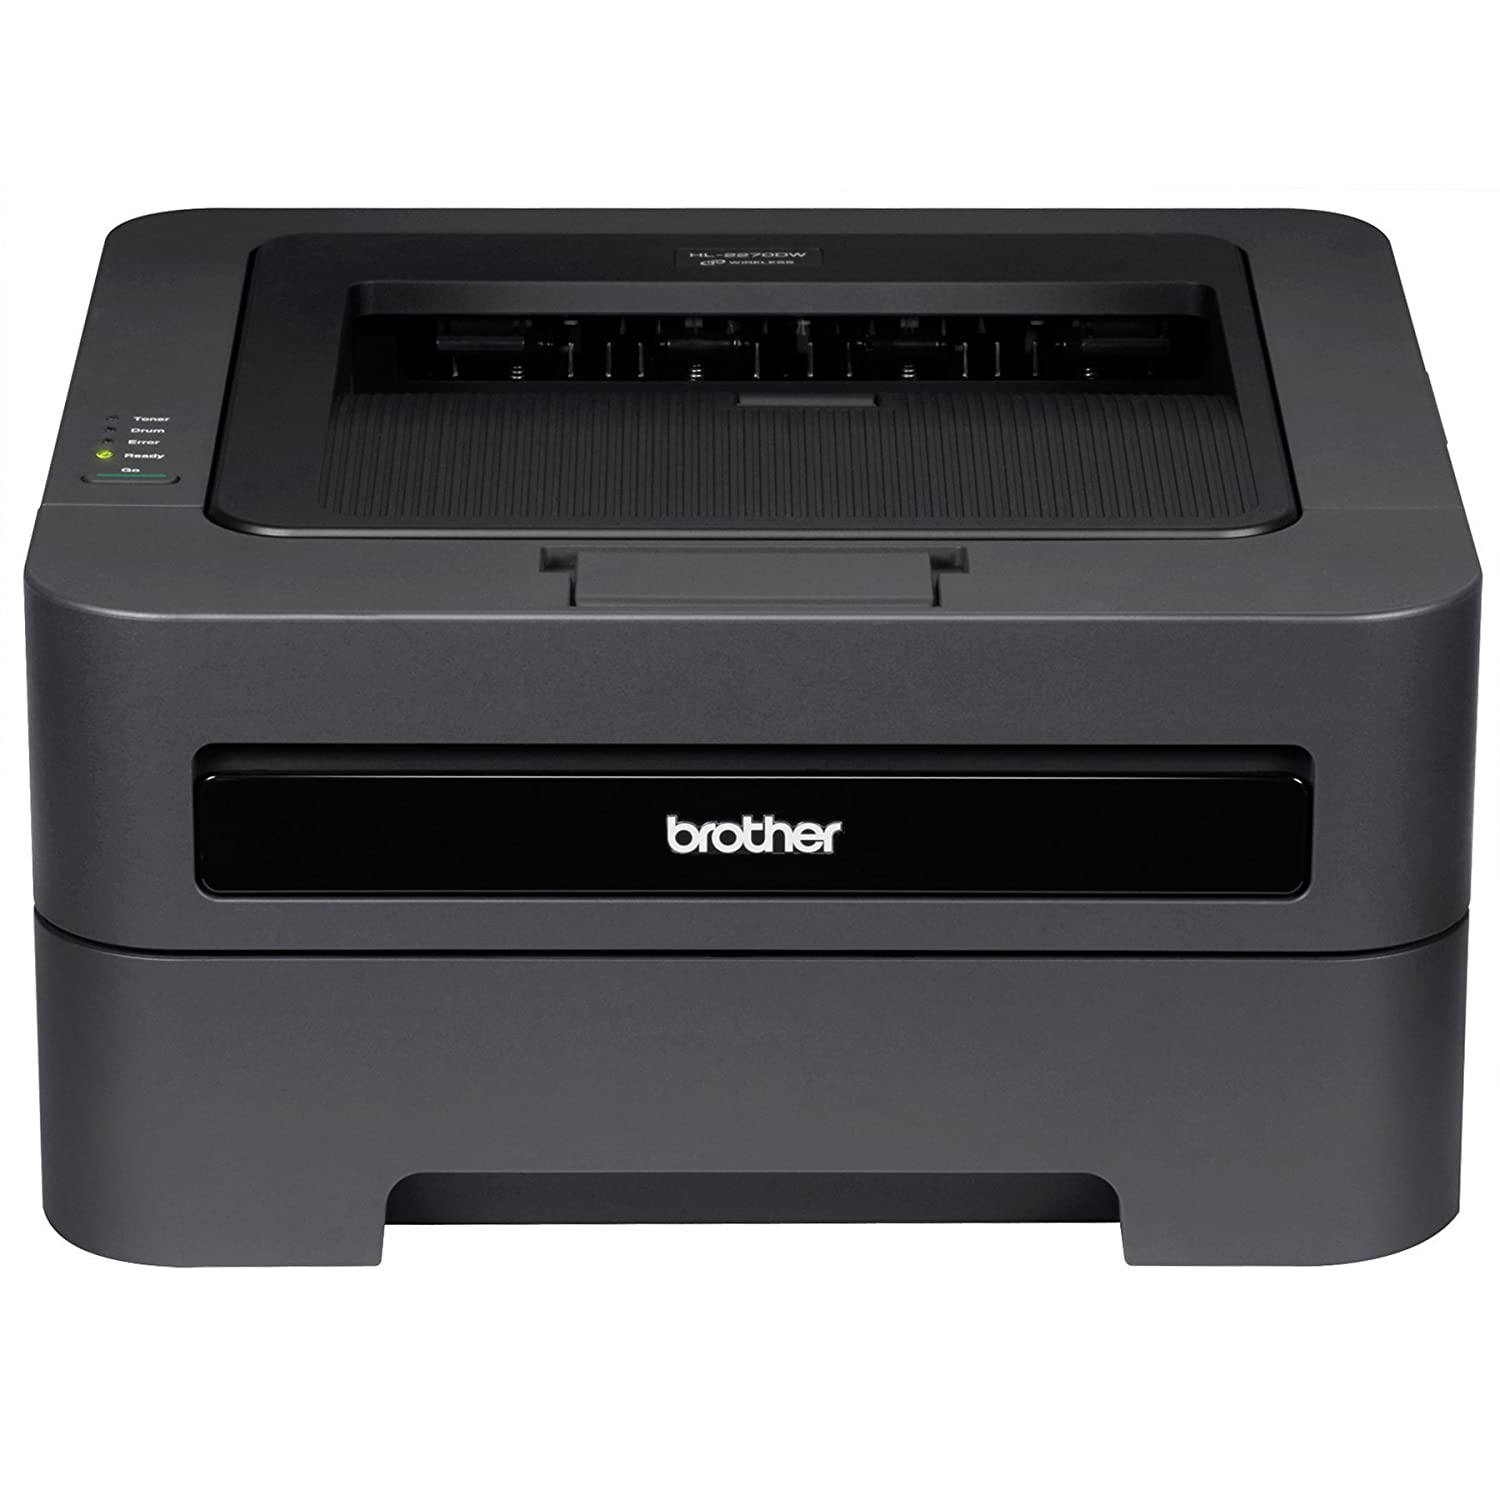 Brother HL-2270DW Compact Laser Printer with Wireless Networking and Duplex(US Version imported by uShopMall U.S.A.)   B00450DVDY